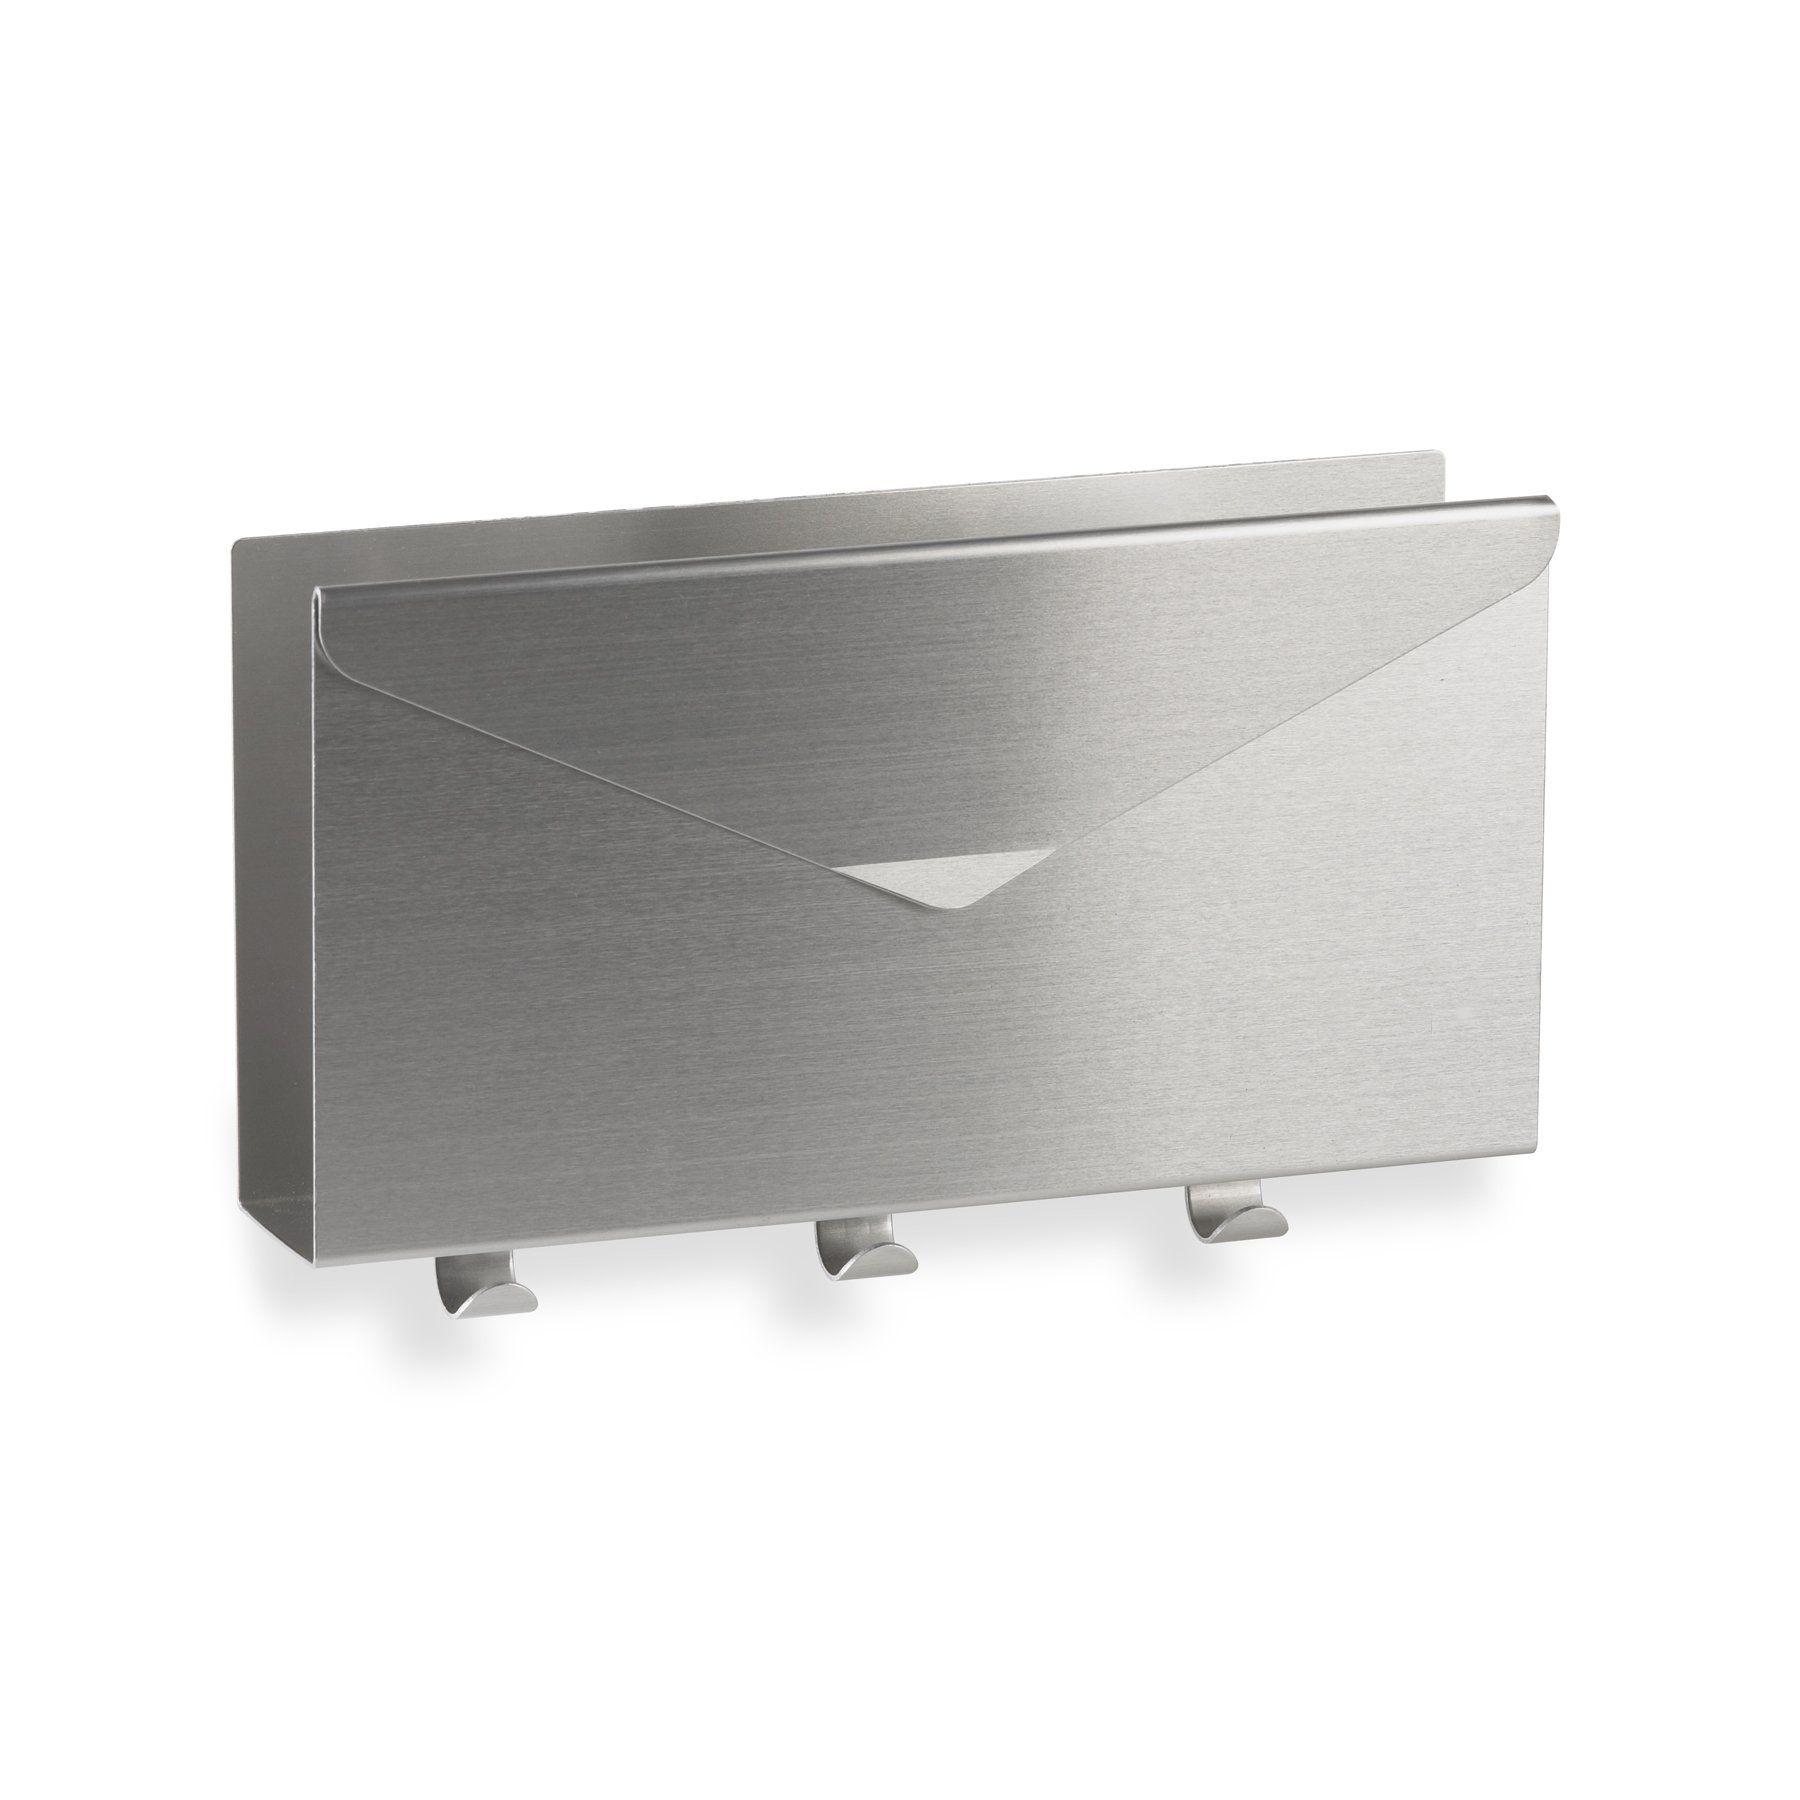 office door mail holder. Another Option For Next To Door Amazon.com - Umbra Lettro Brushed-Aluminum Letter Office Mail Holder I